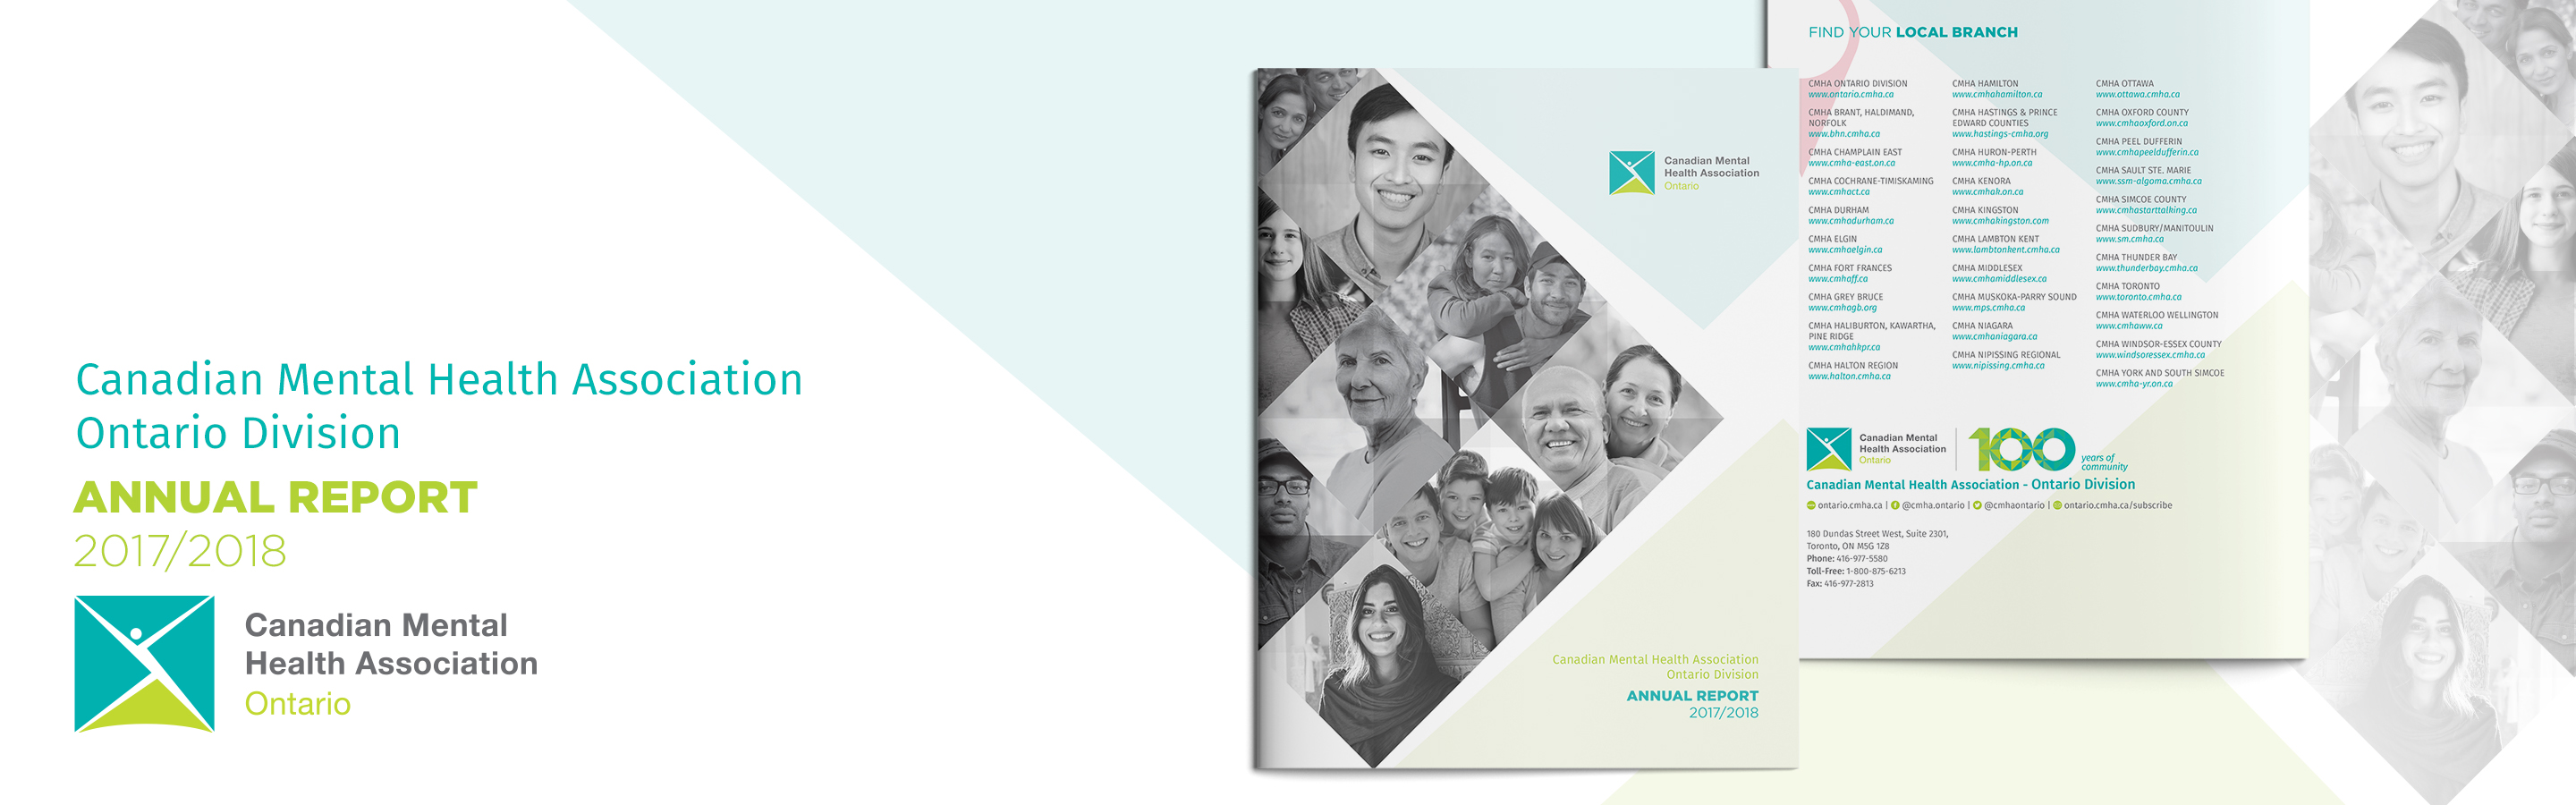 CMHA Ontario 2017/2018 Annual Report now available